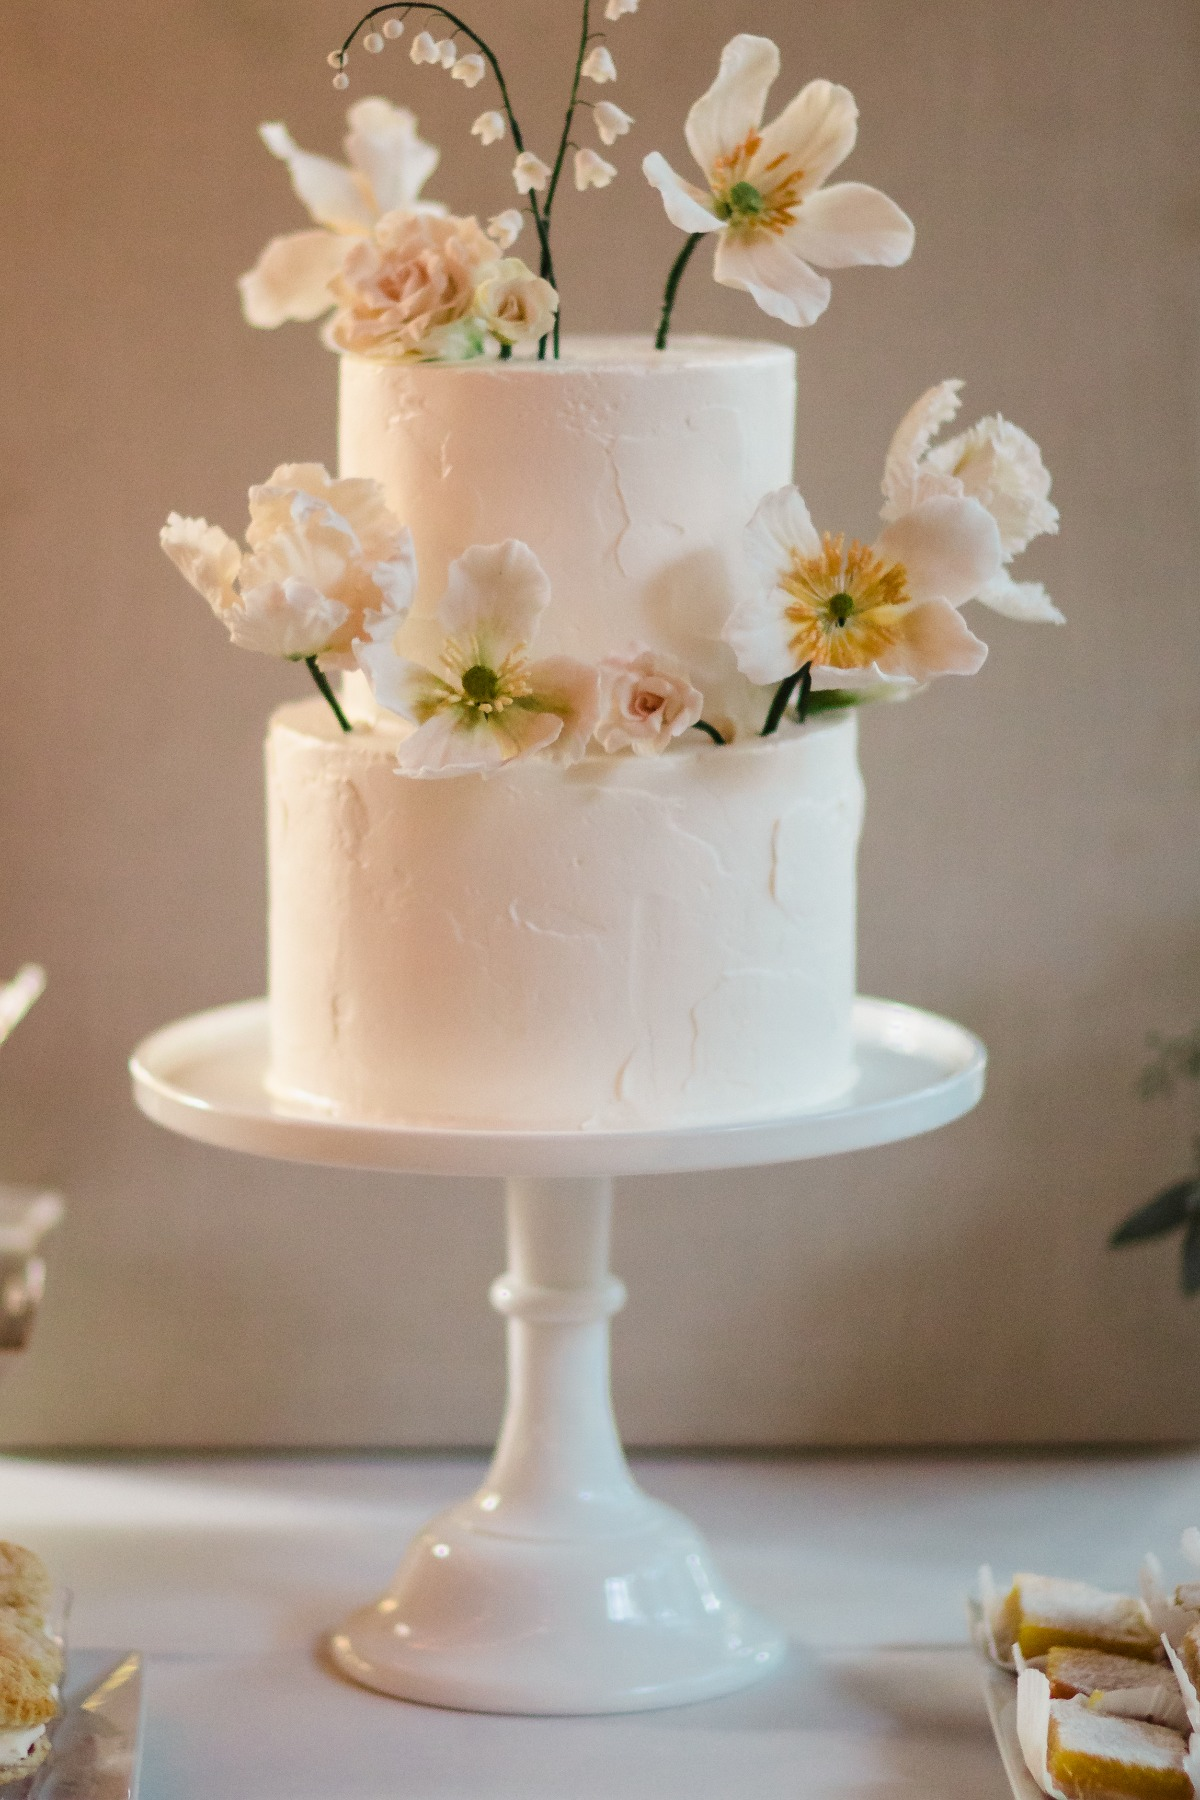 white wedding cake with sugar flowers from Lele Patisserie